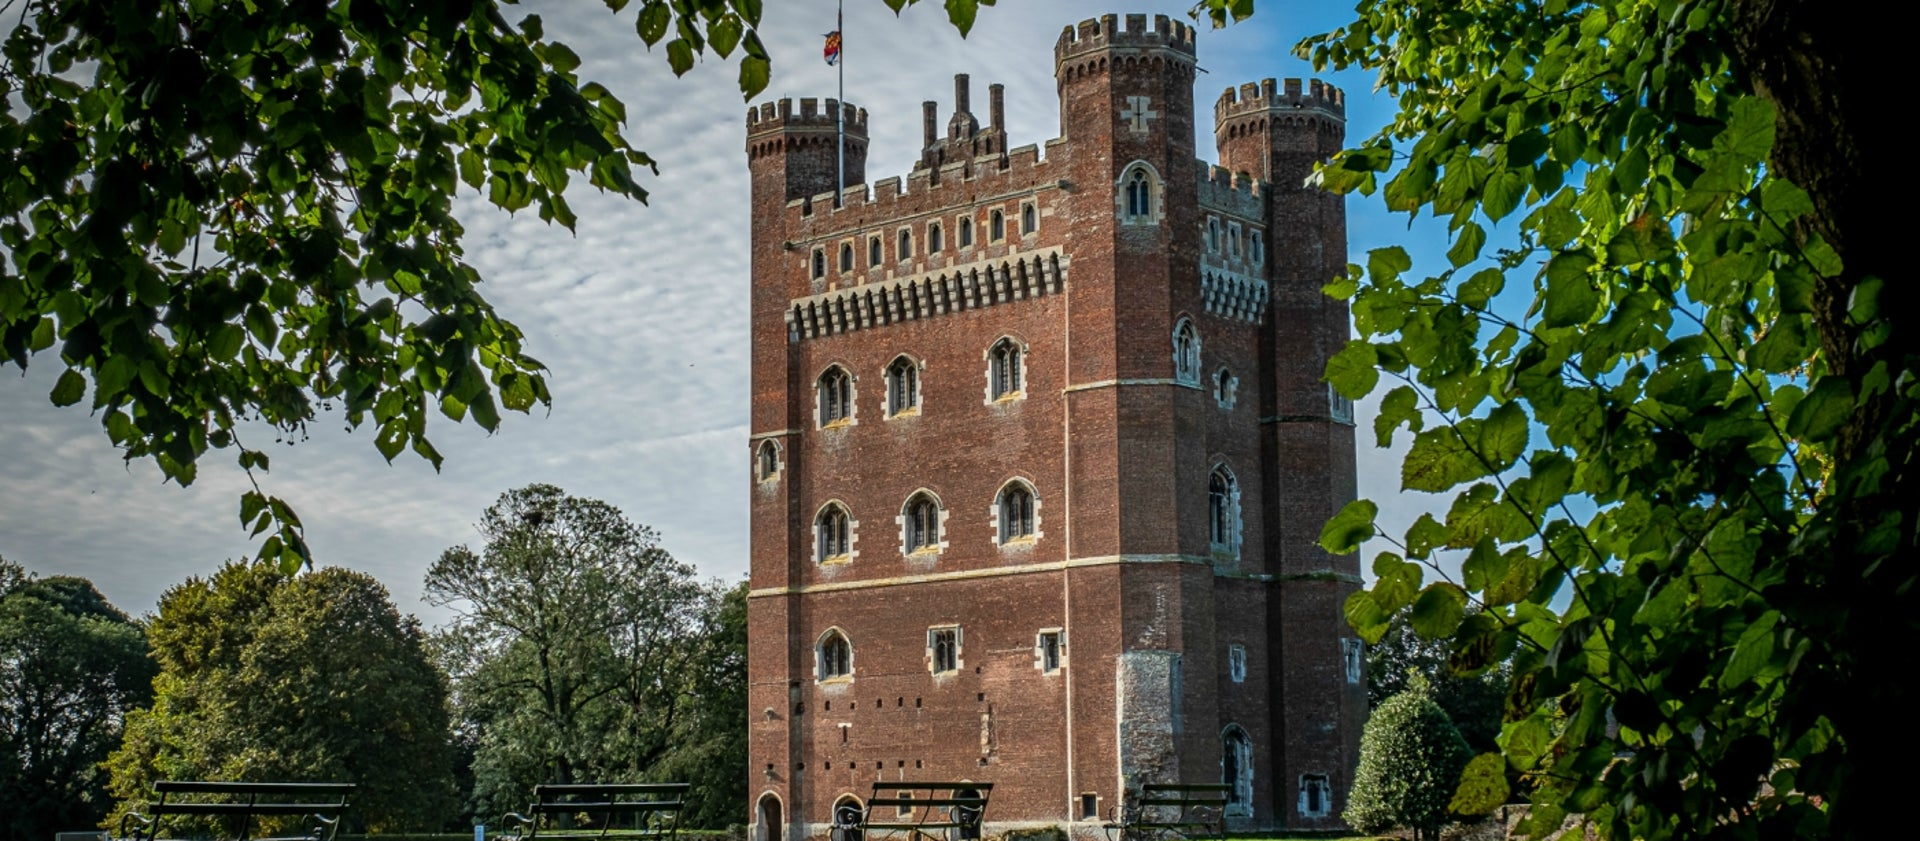 Tattershall Castle on a sunny day